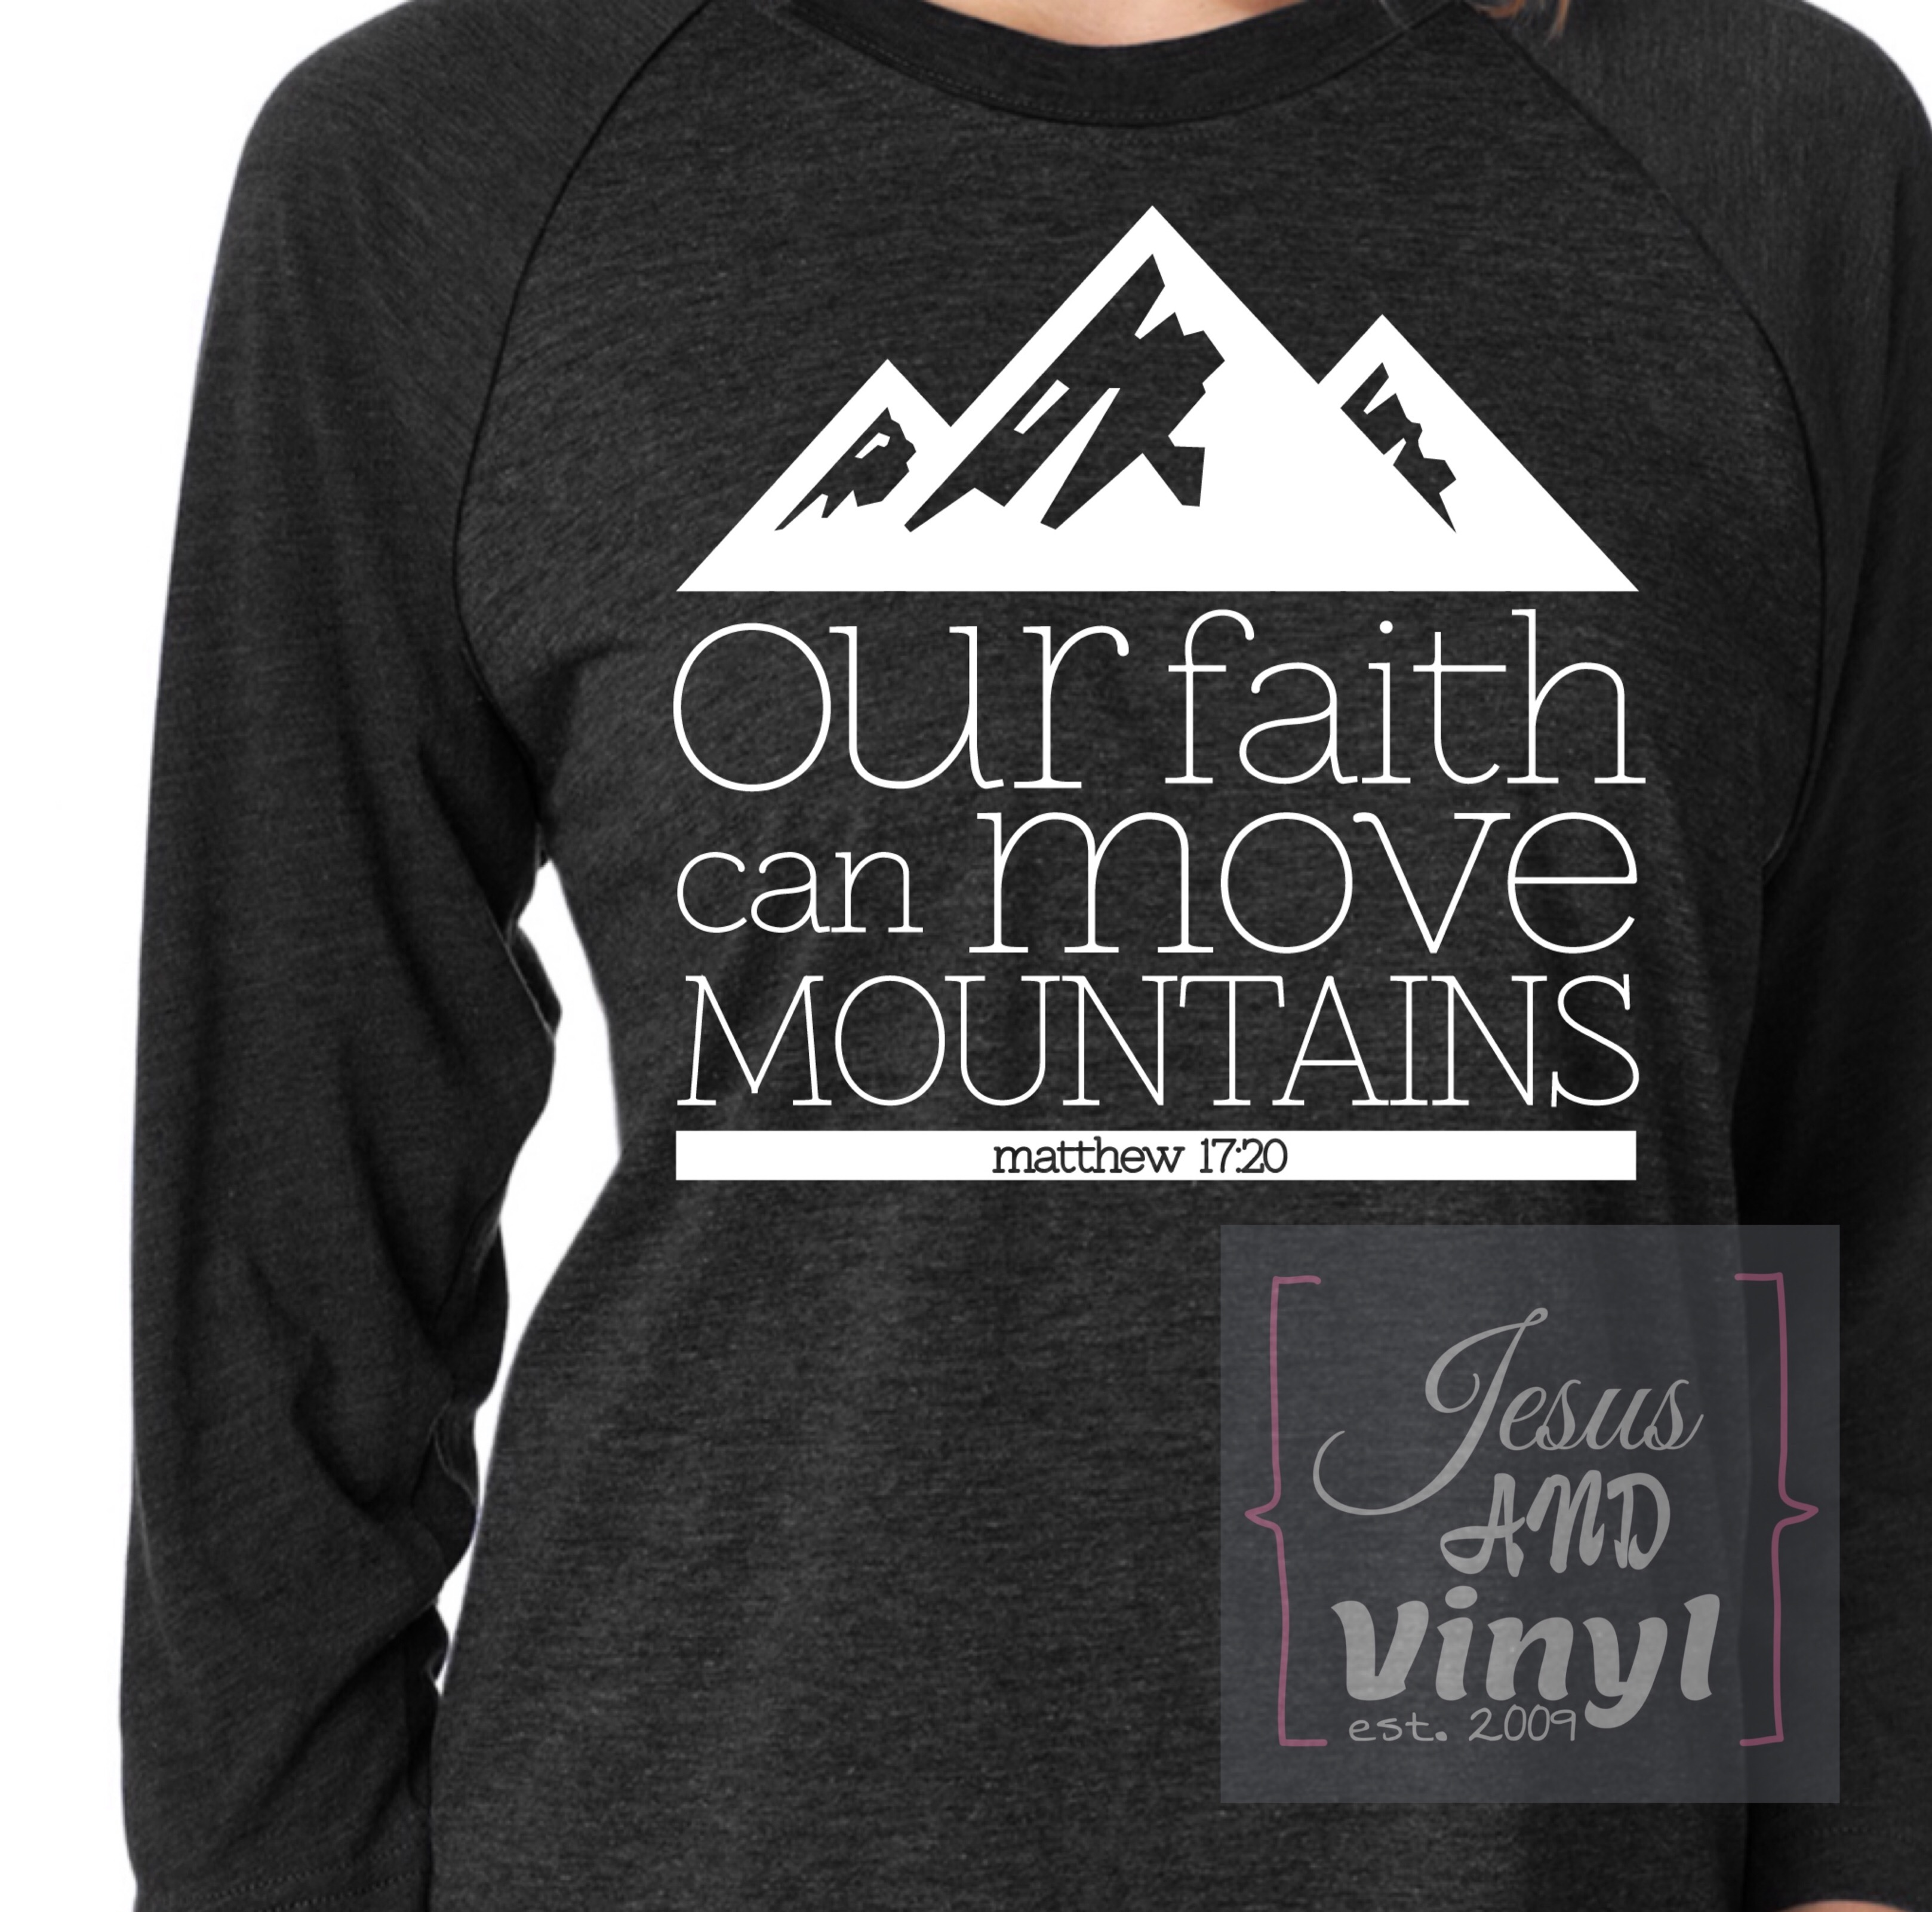 5f3bdac16 Womens Next Level raglan style baseball shirt Faith Can Move Mountains